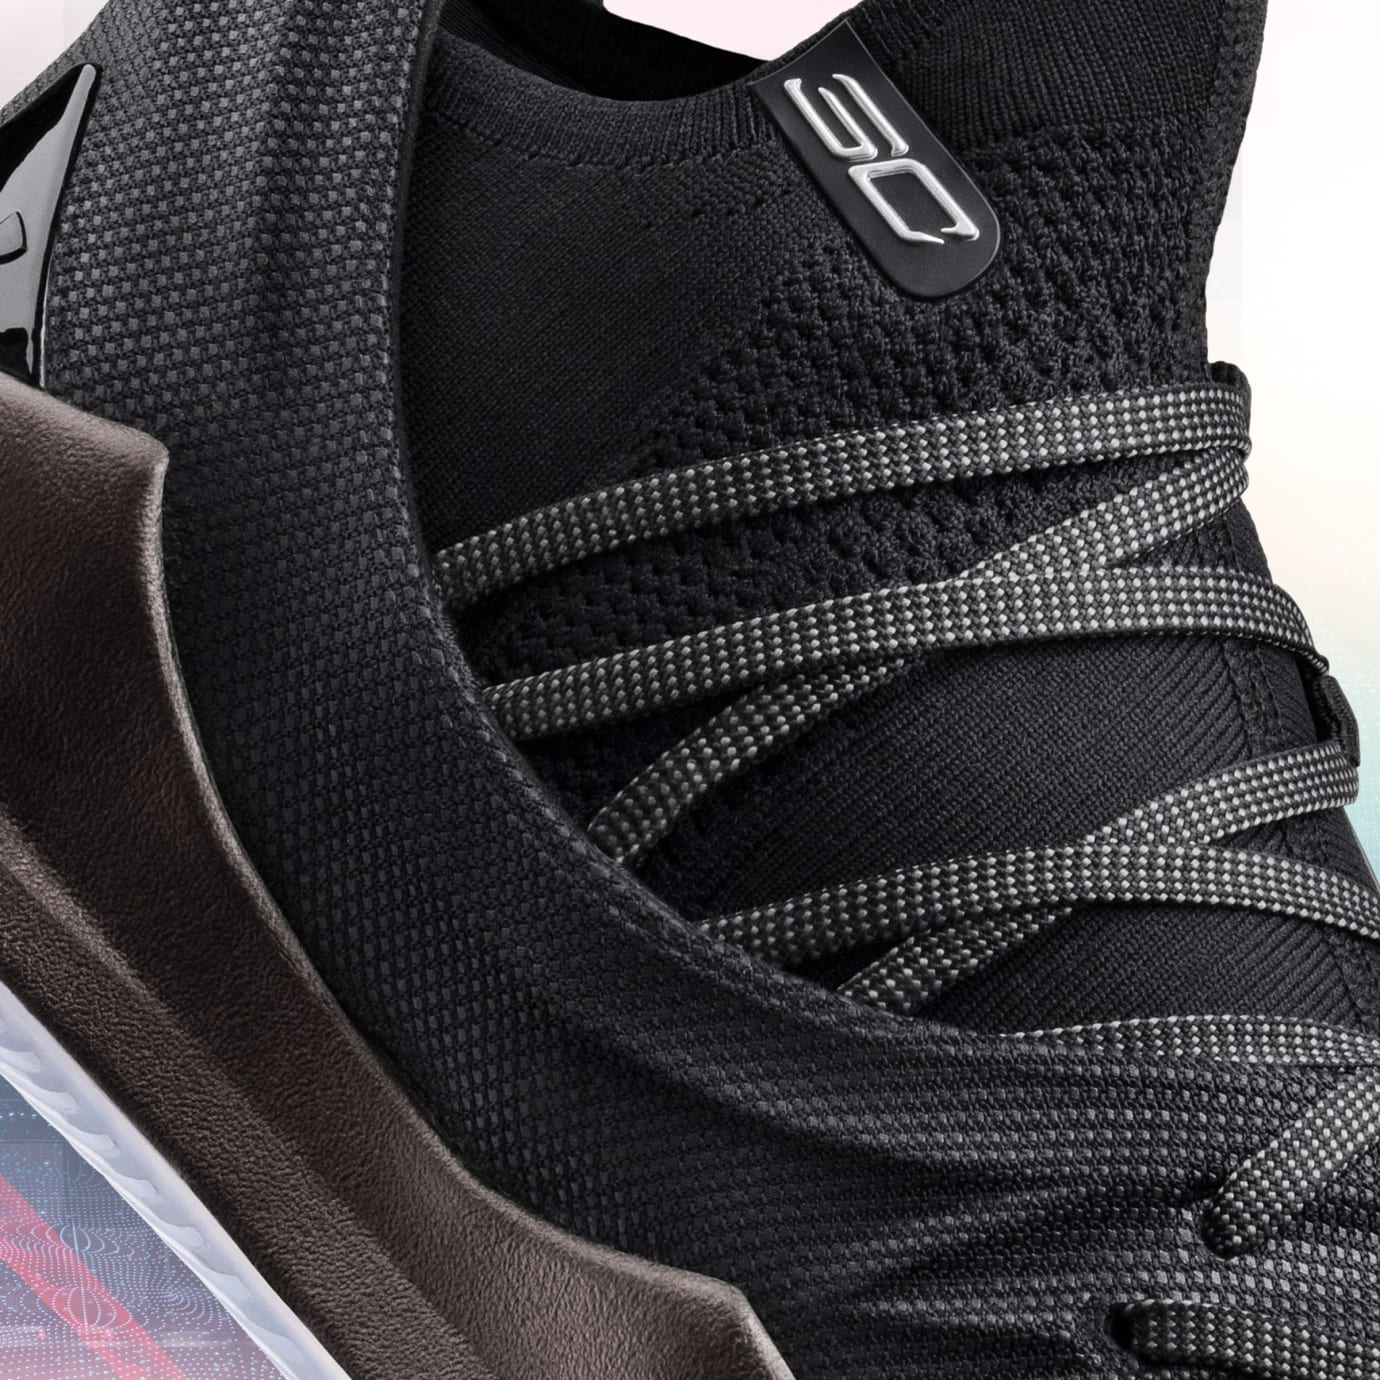 ebda864f349 Image via Under Armour Under Armour Curry 5  Pi Day  (Midfoot)